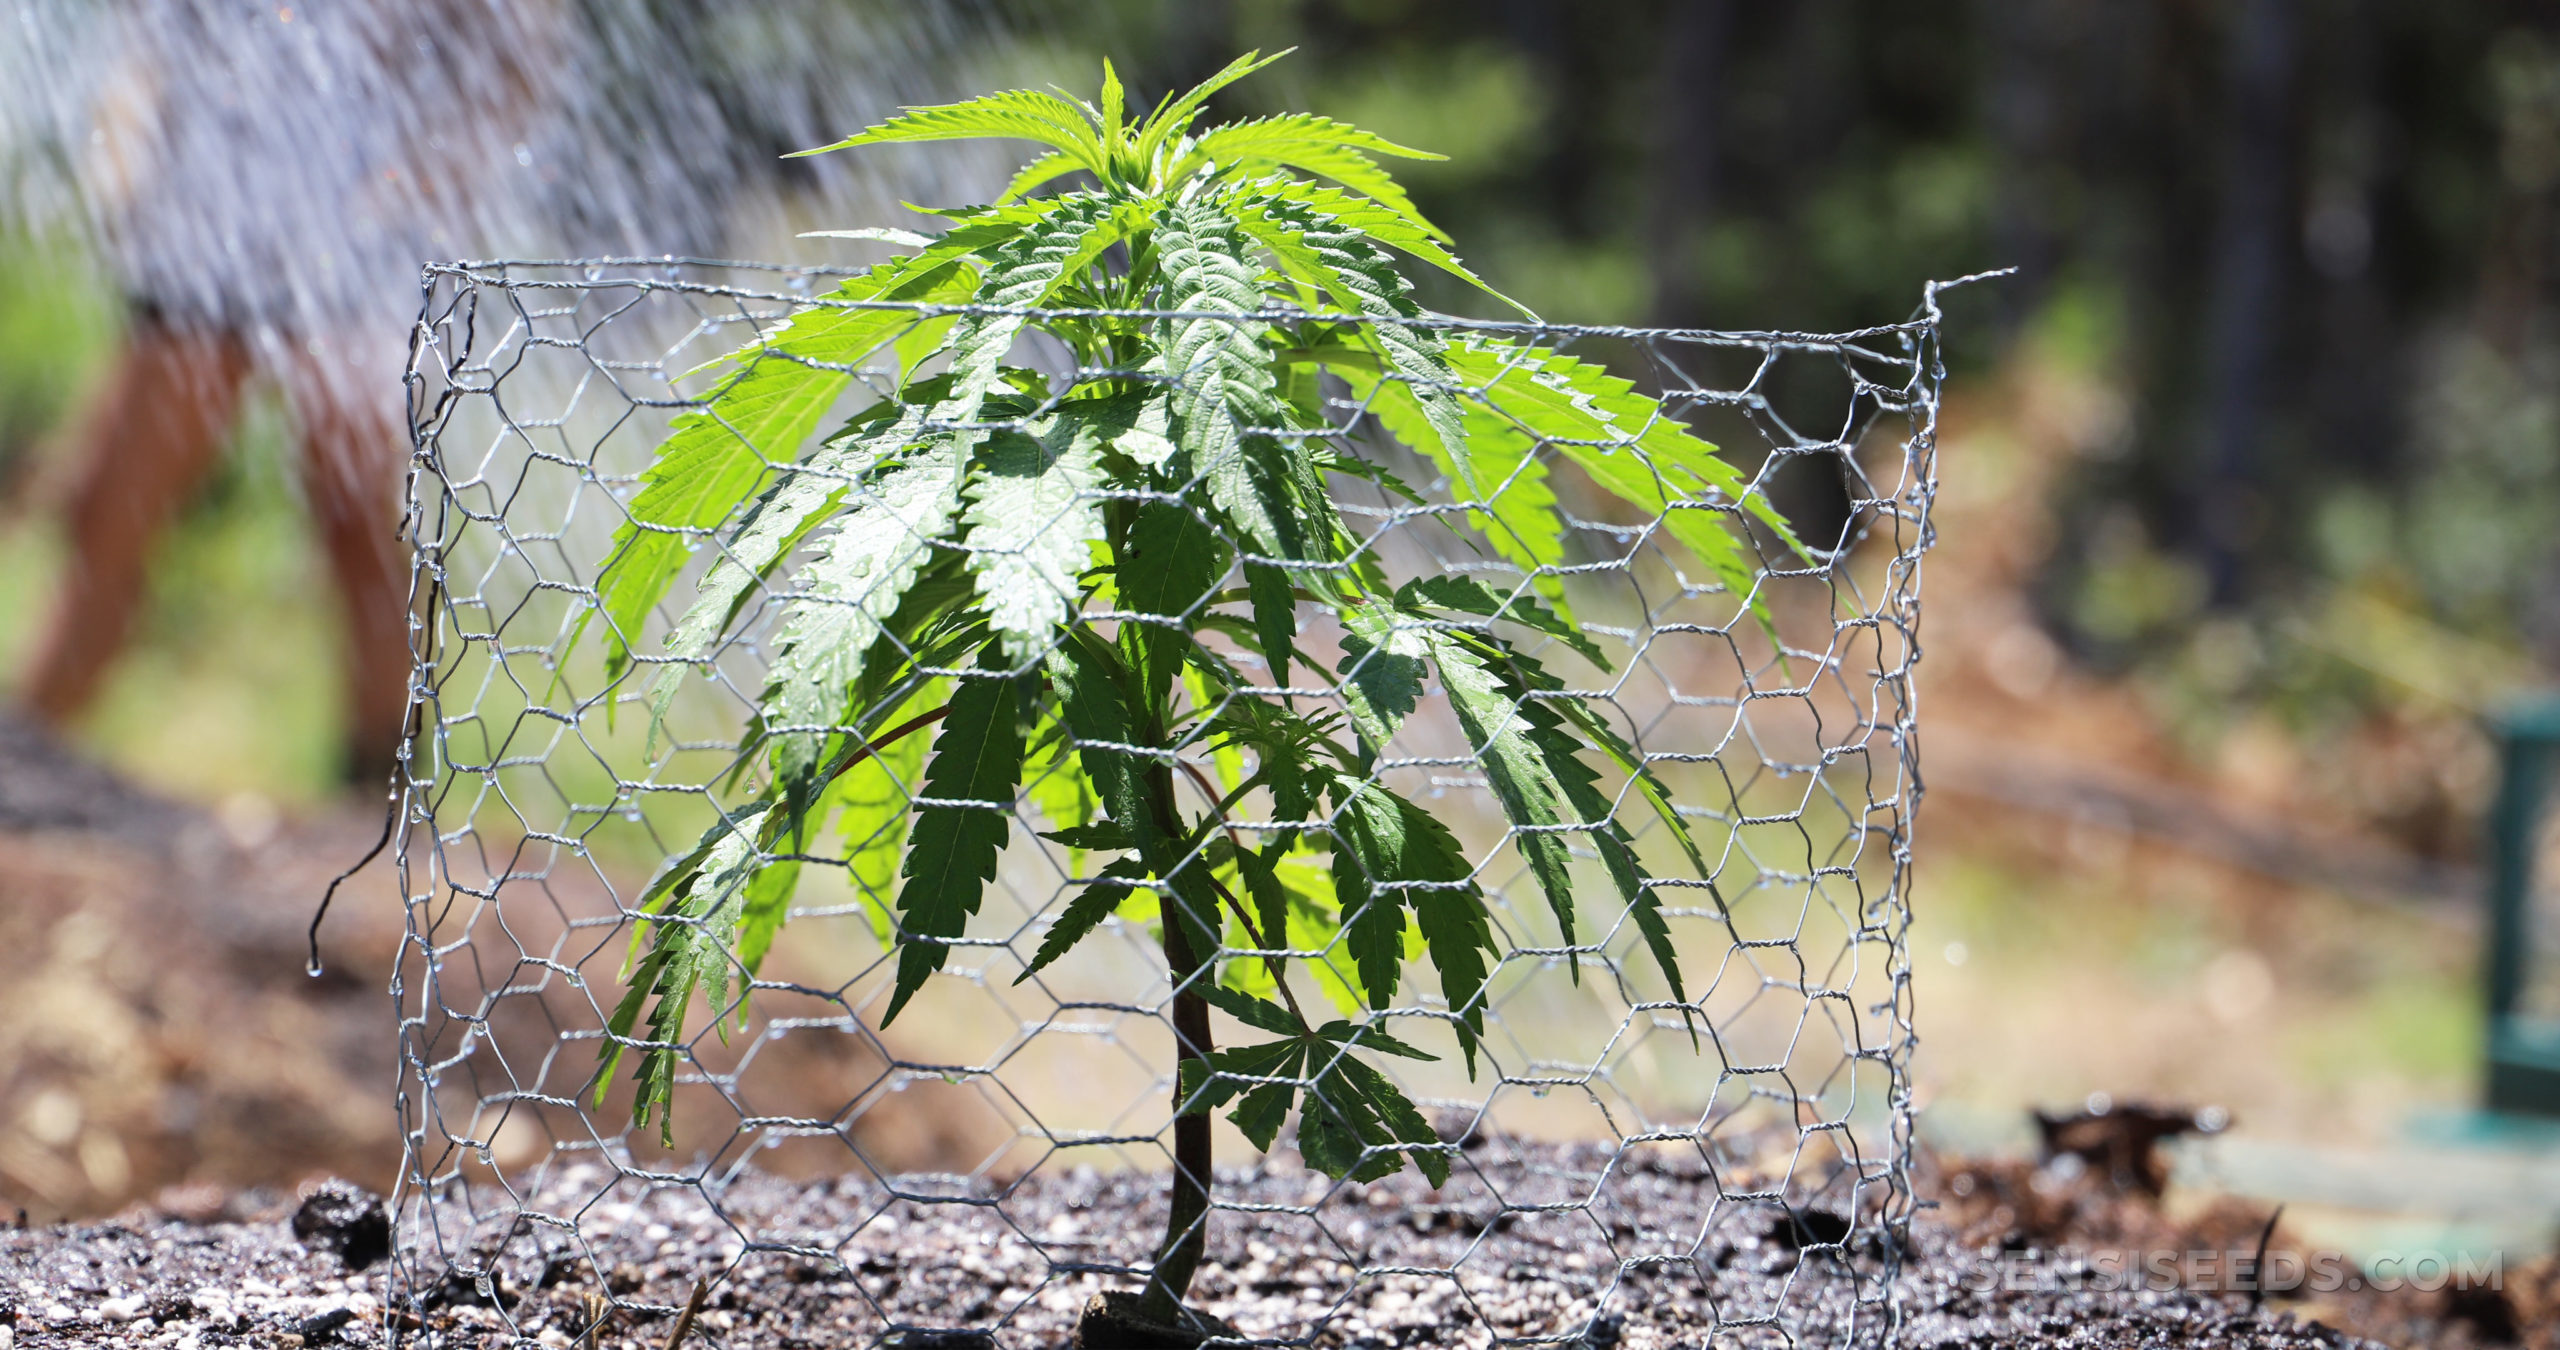 How to grow weed the main mistakes to avoid